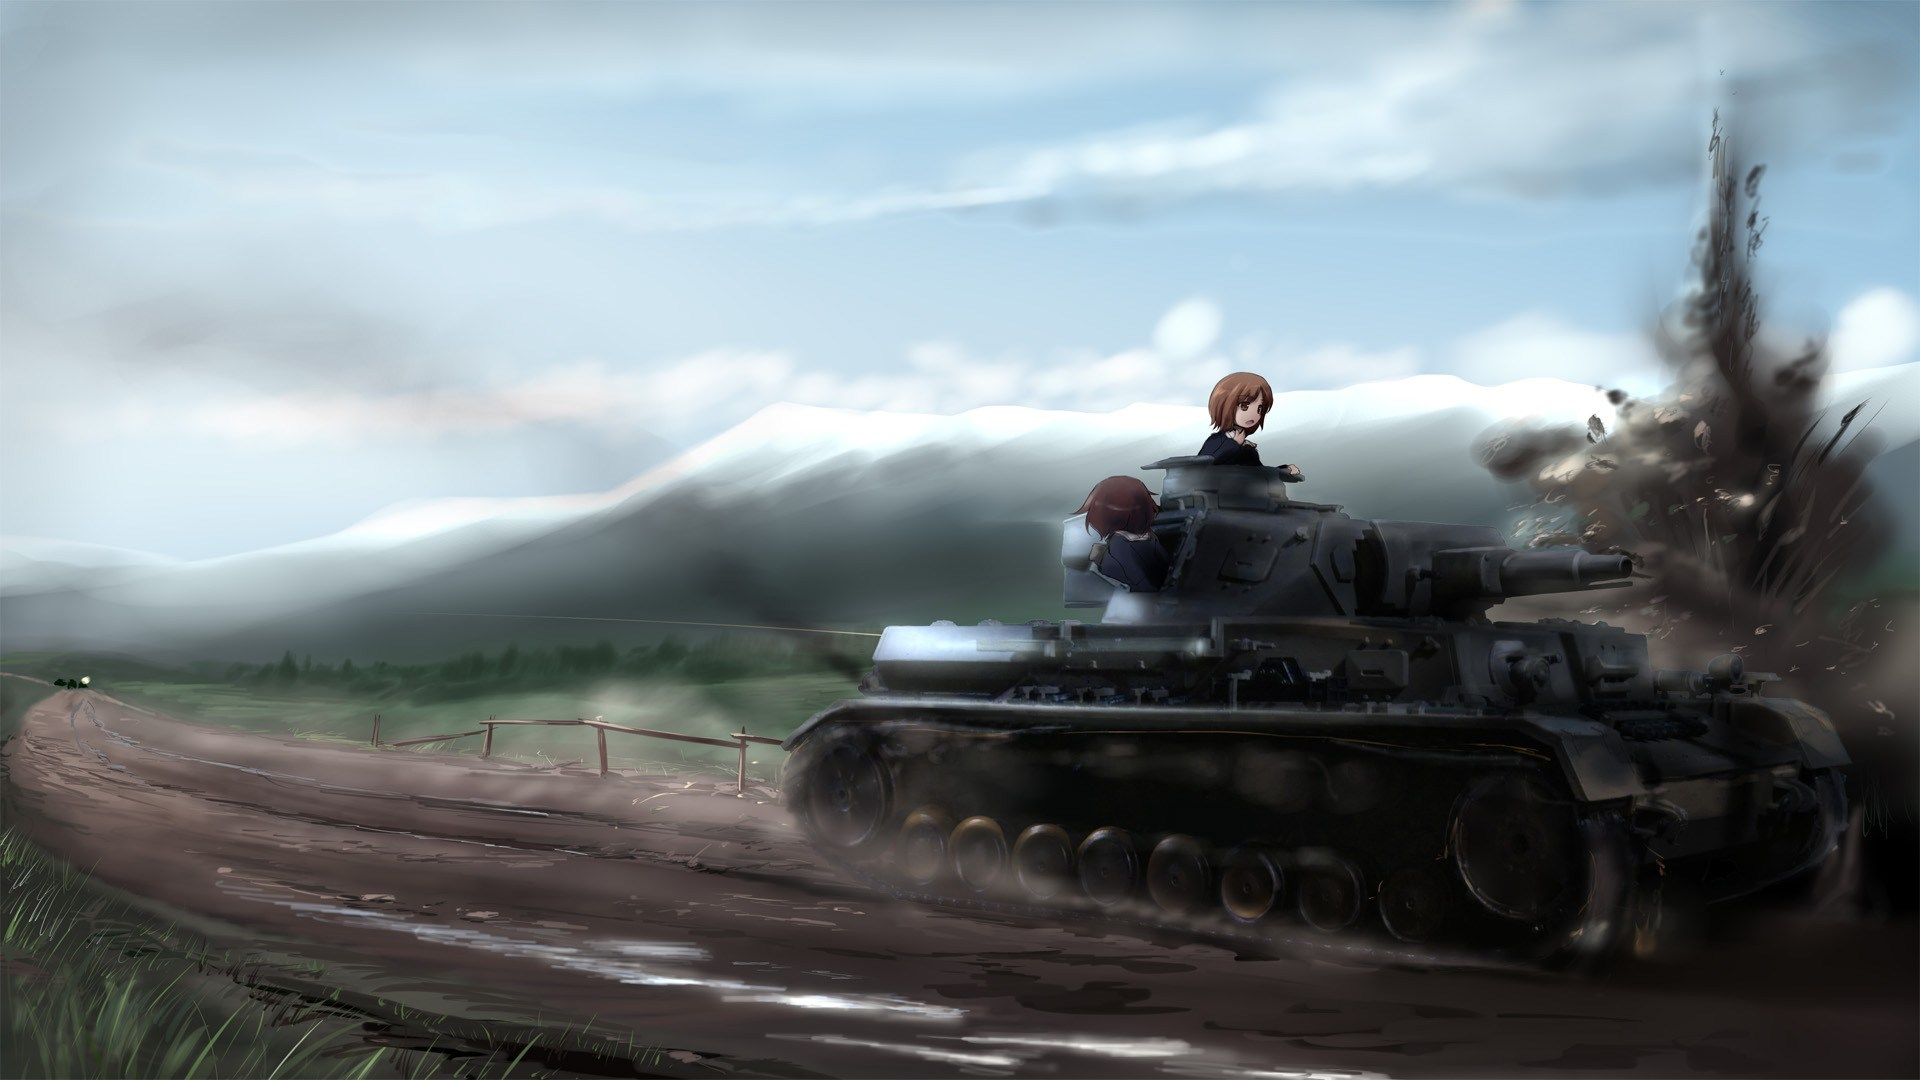 1920x1080-free-and-screensavers-for-girls-und-panzer-wallpaper-wpc580786